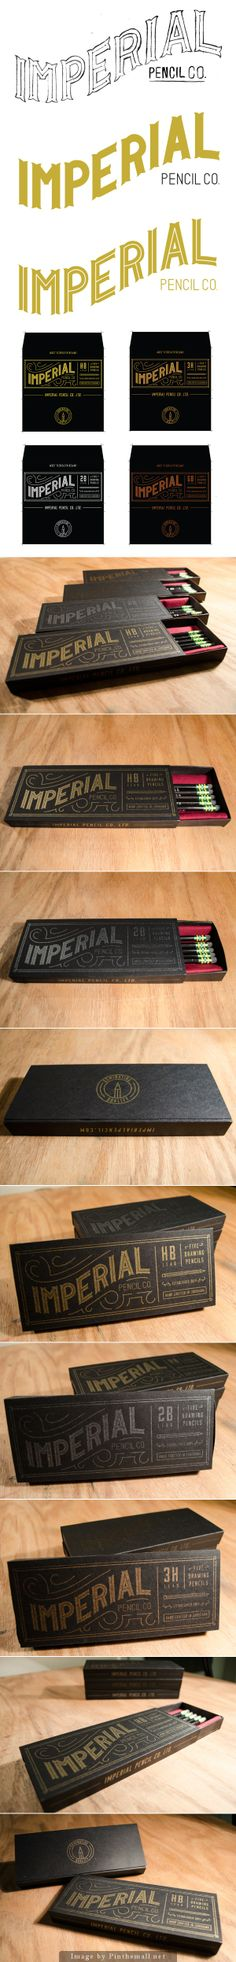 Imperial Pencil Co.